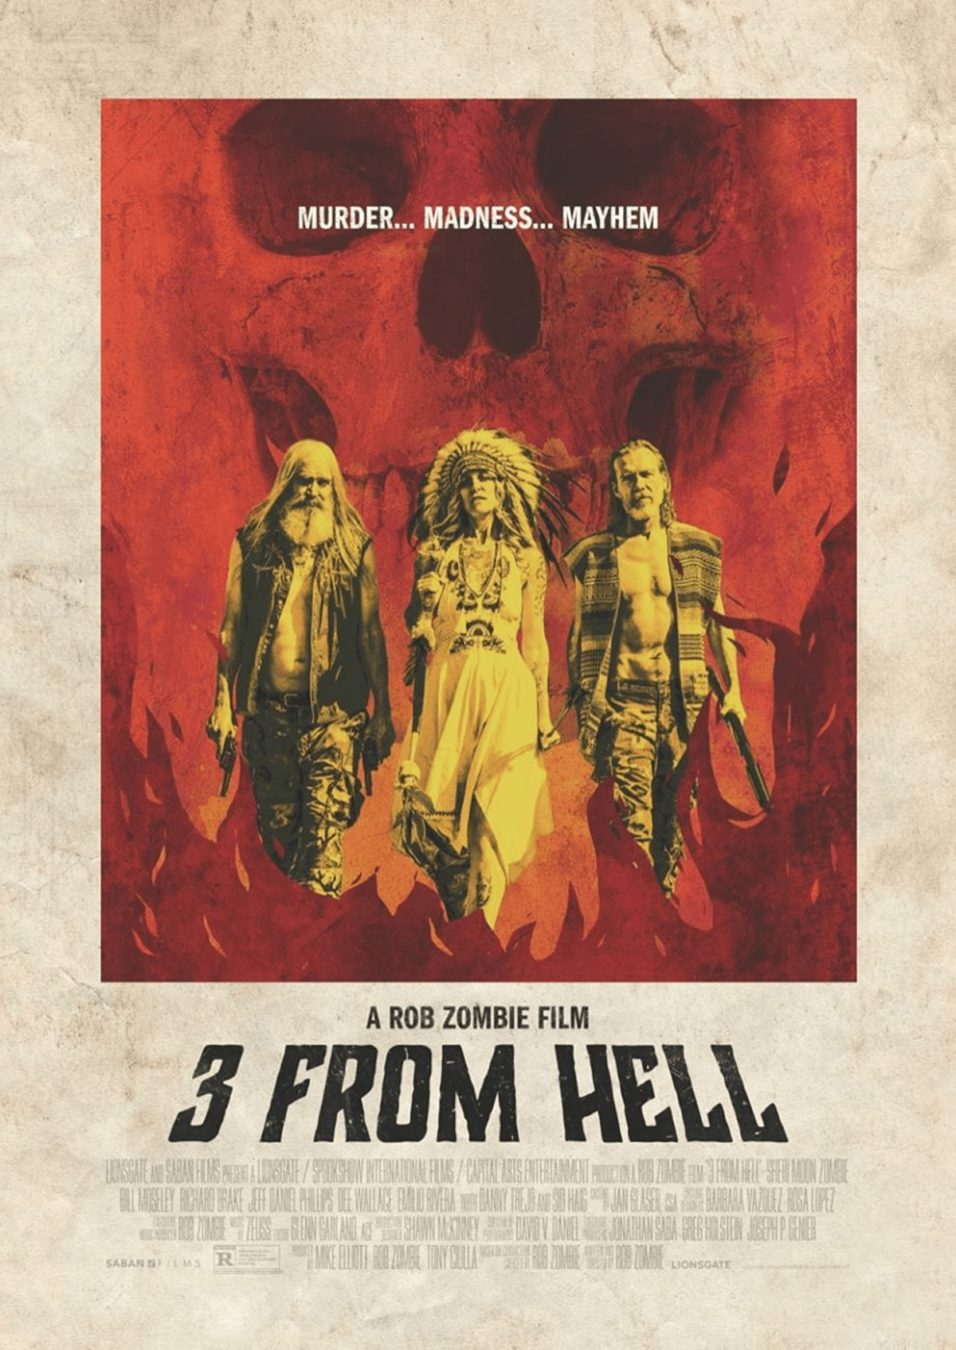 [Review] Rob Zombie Sets The Firefly's Past Ablaze and Rides The Flames Like A Tidal Wave of Terror in 3 FROM HELL